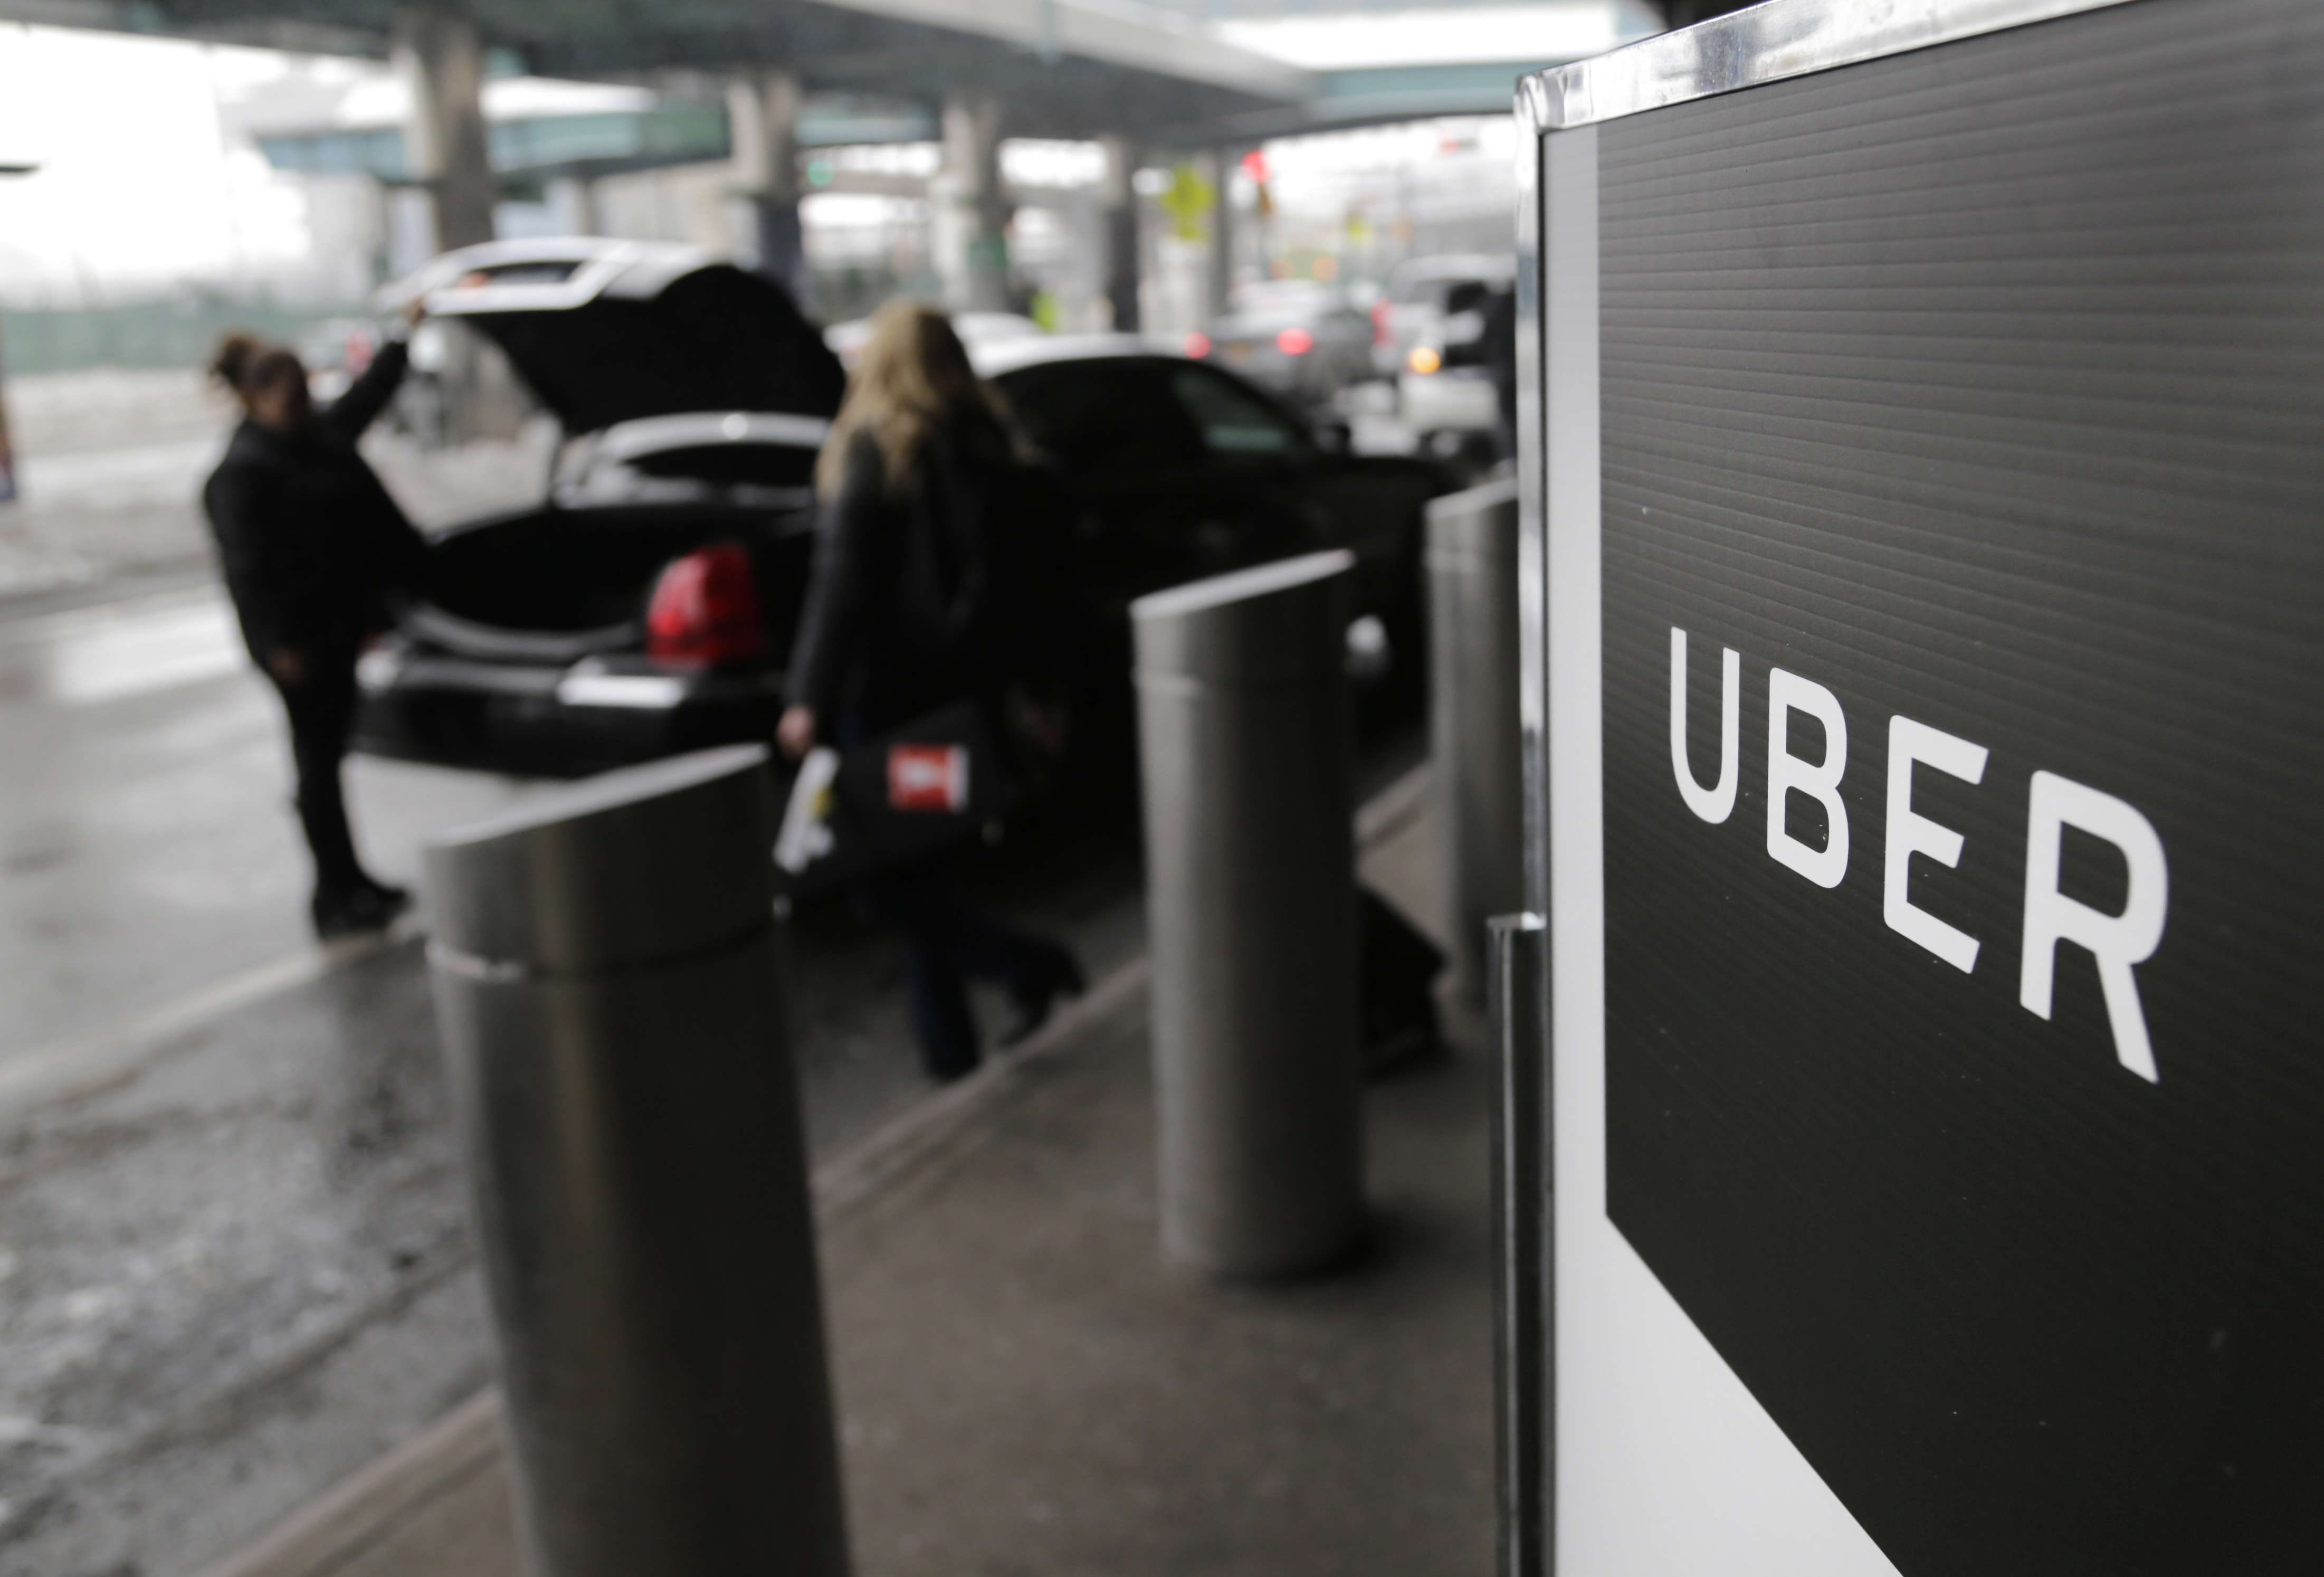 Background check rules for Uber, Lyft drivers modified - The